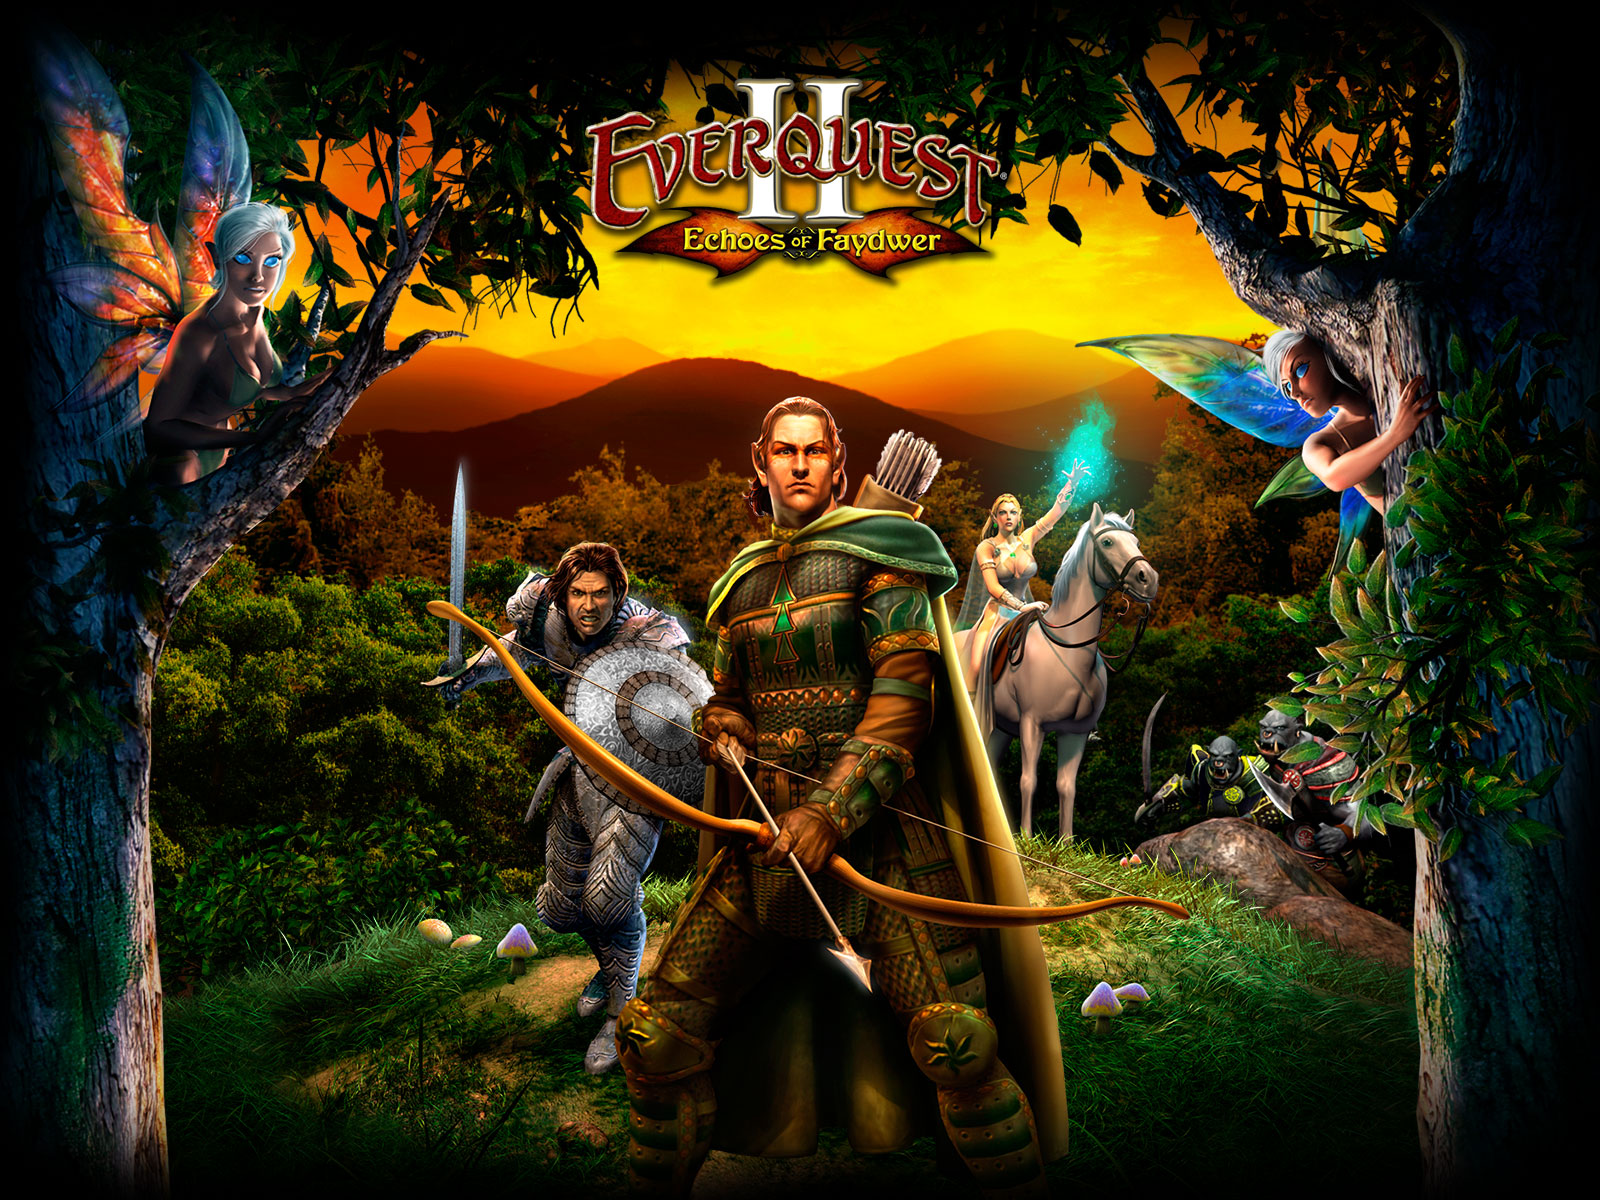 EverQuest Wallpaper and Background Image 1600x1200 ID240824 1600x1200